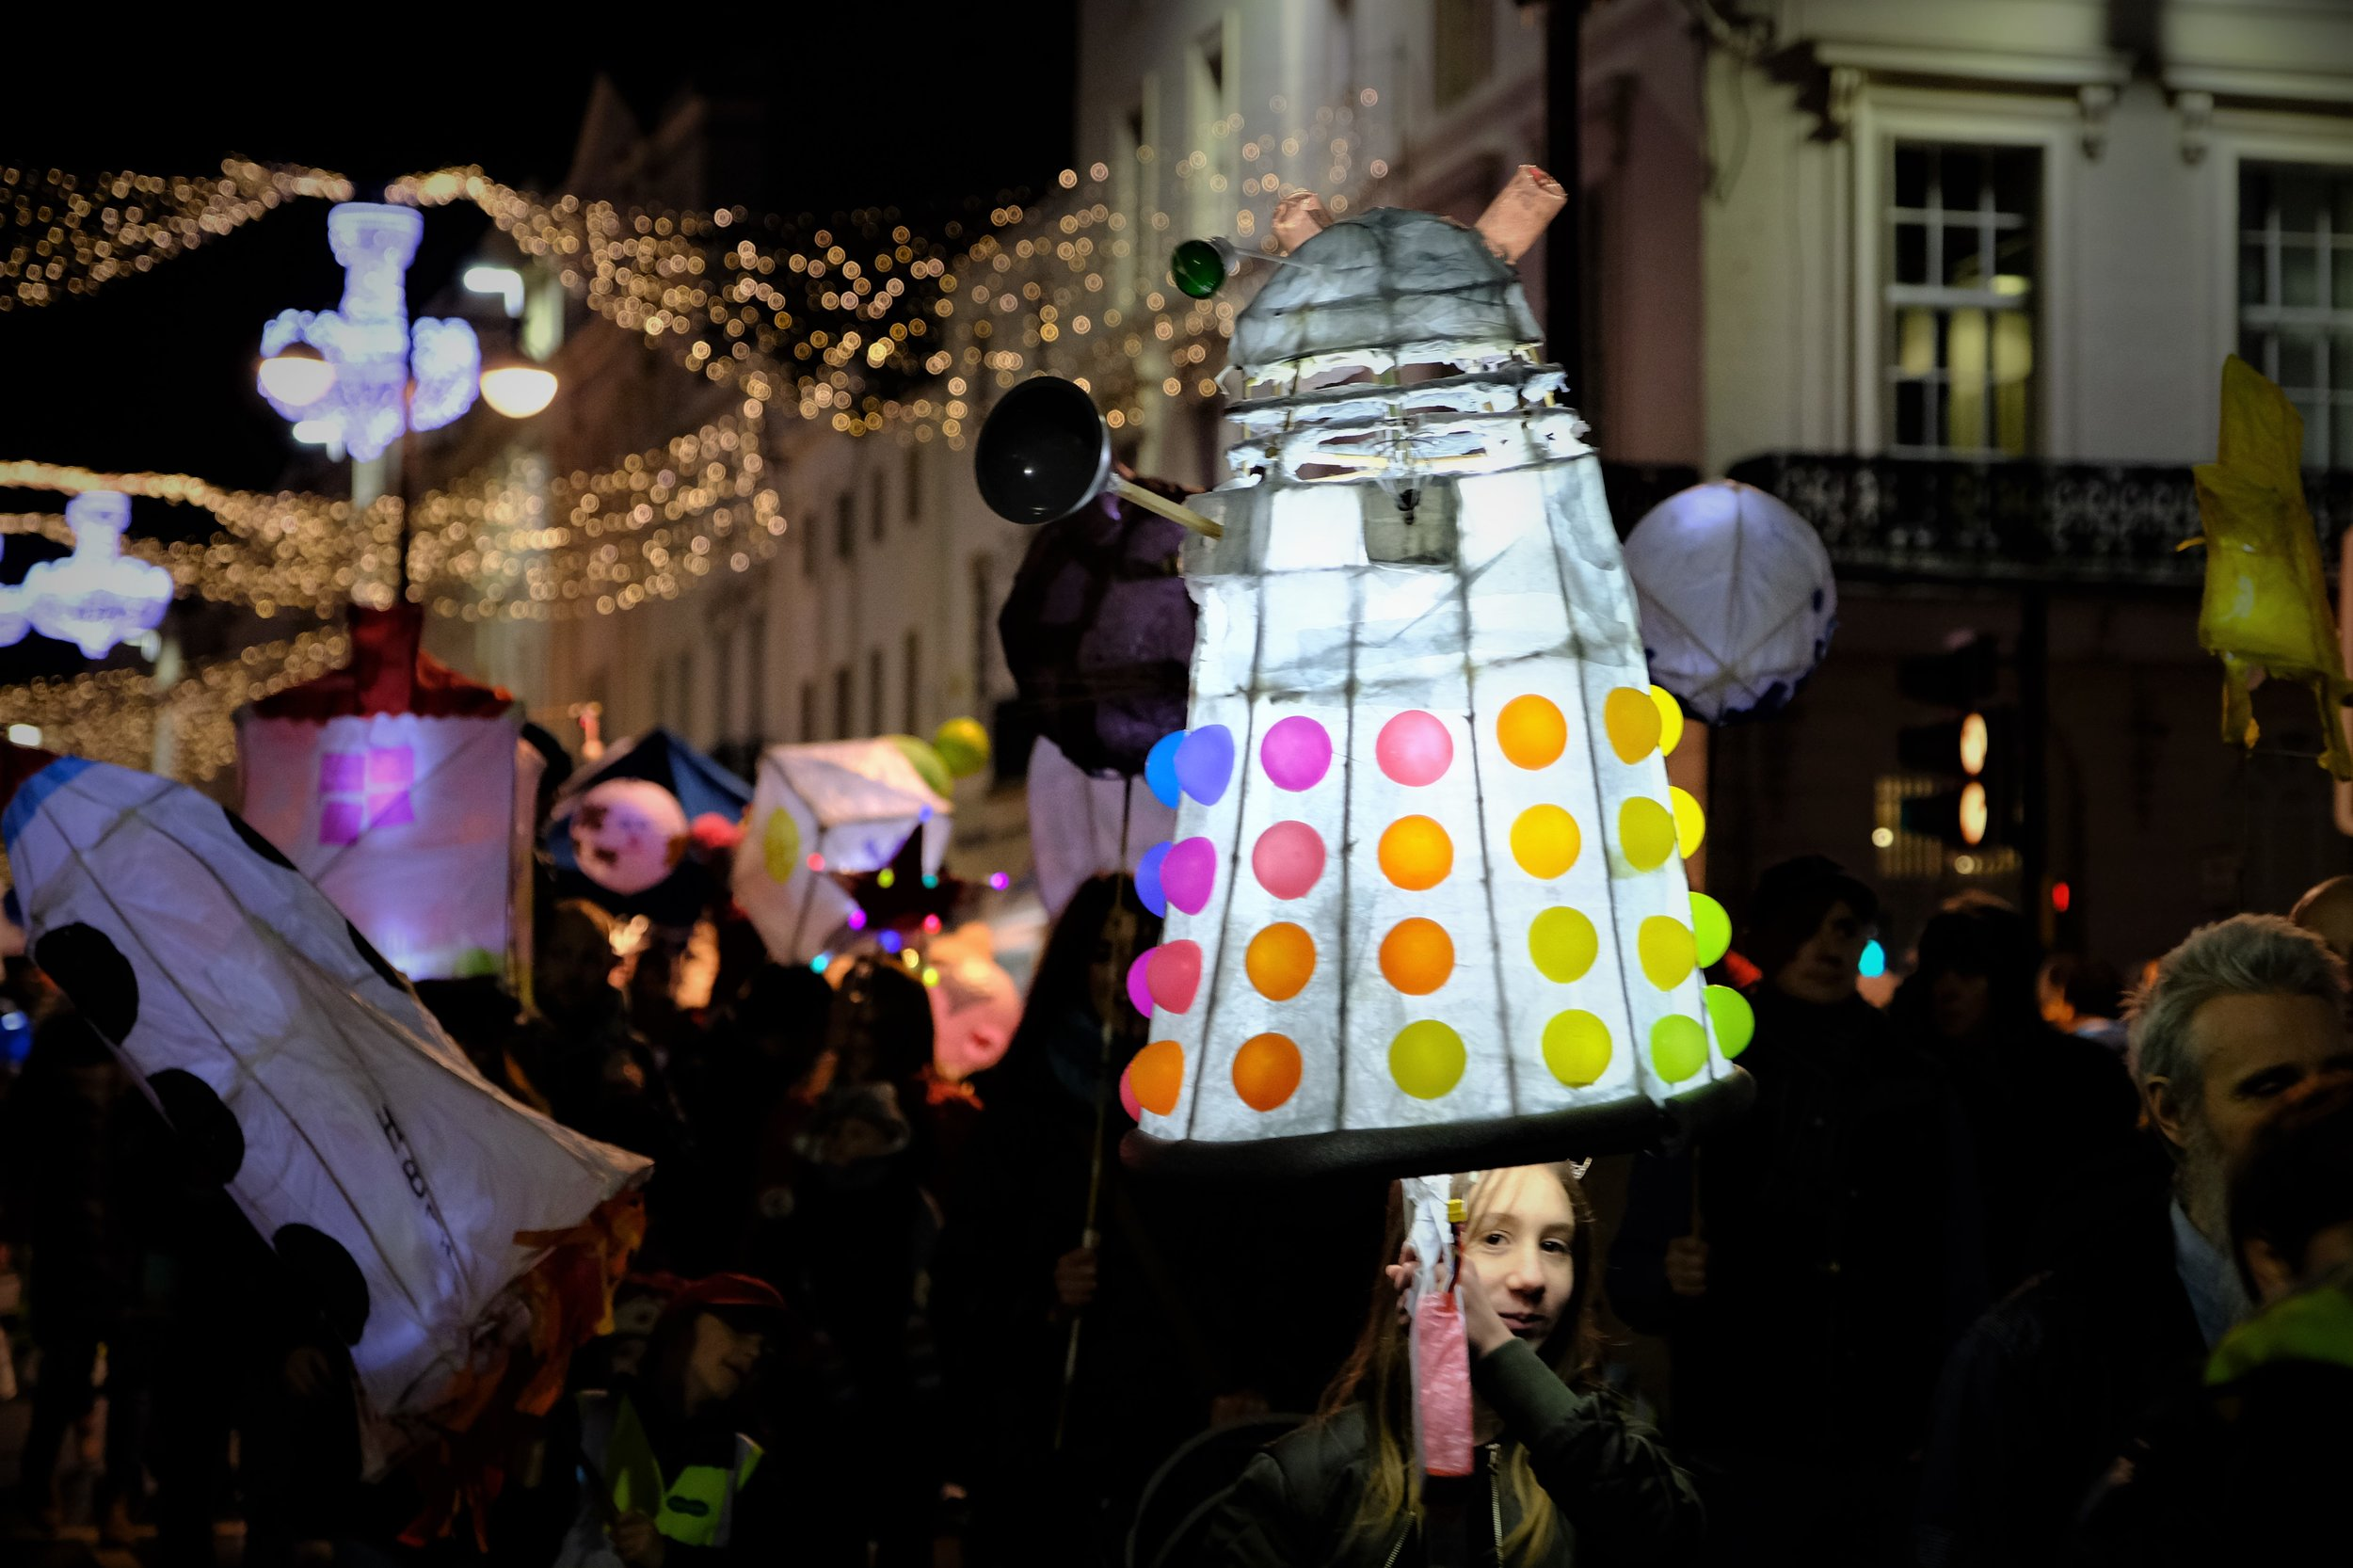 Leamington Spa Event photographer - town carnival leamington lantern parade dalek warwickshire.JPG